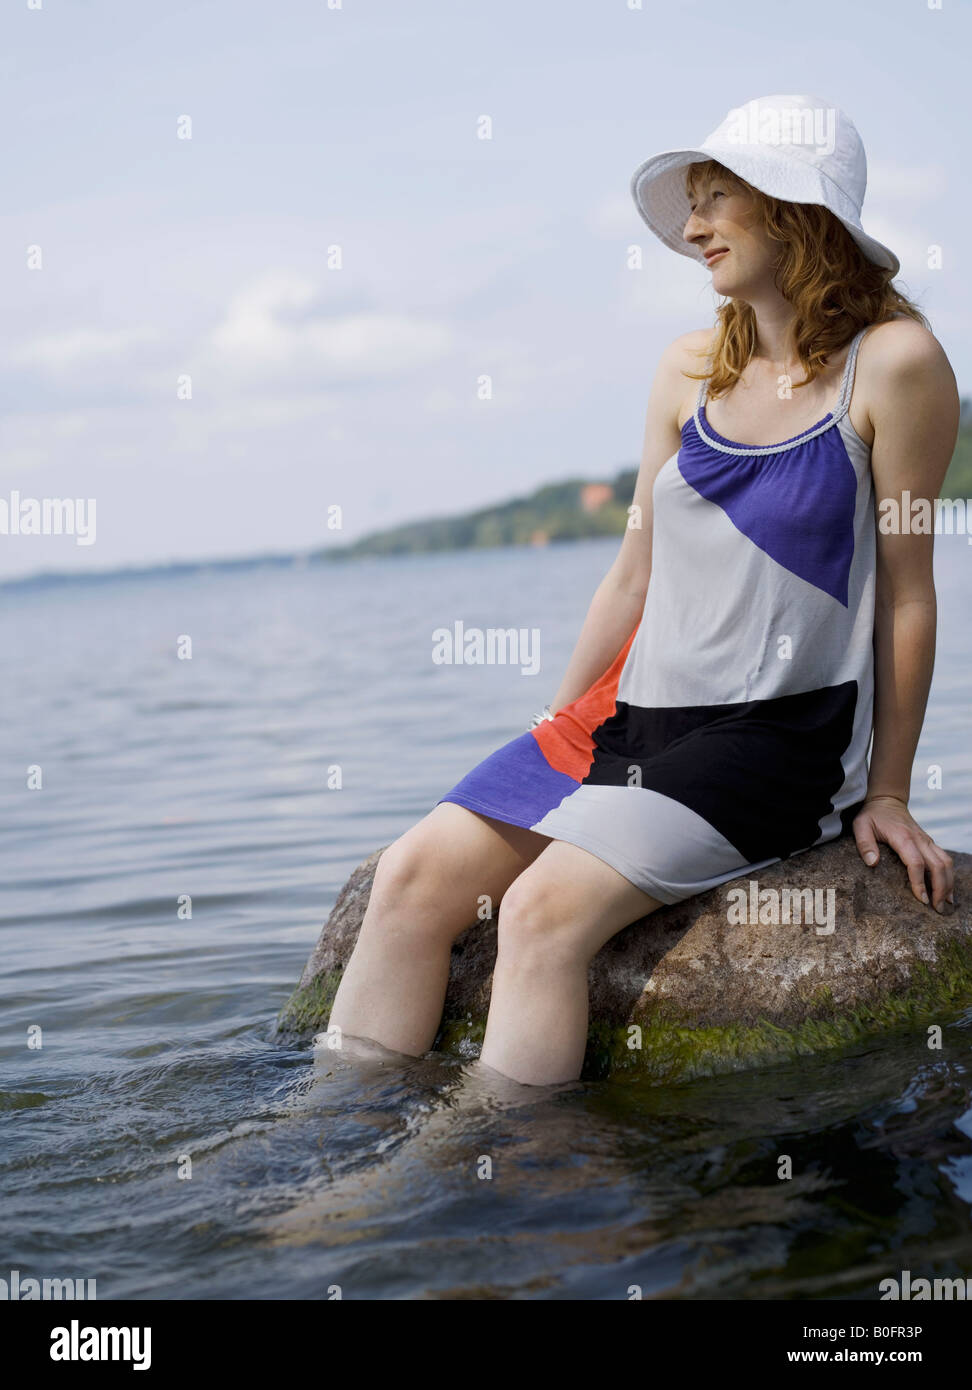 Woman sitting on rock in water - Stock Image